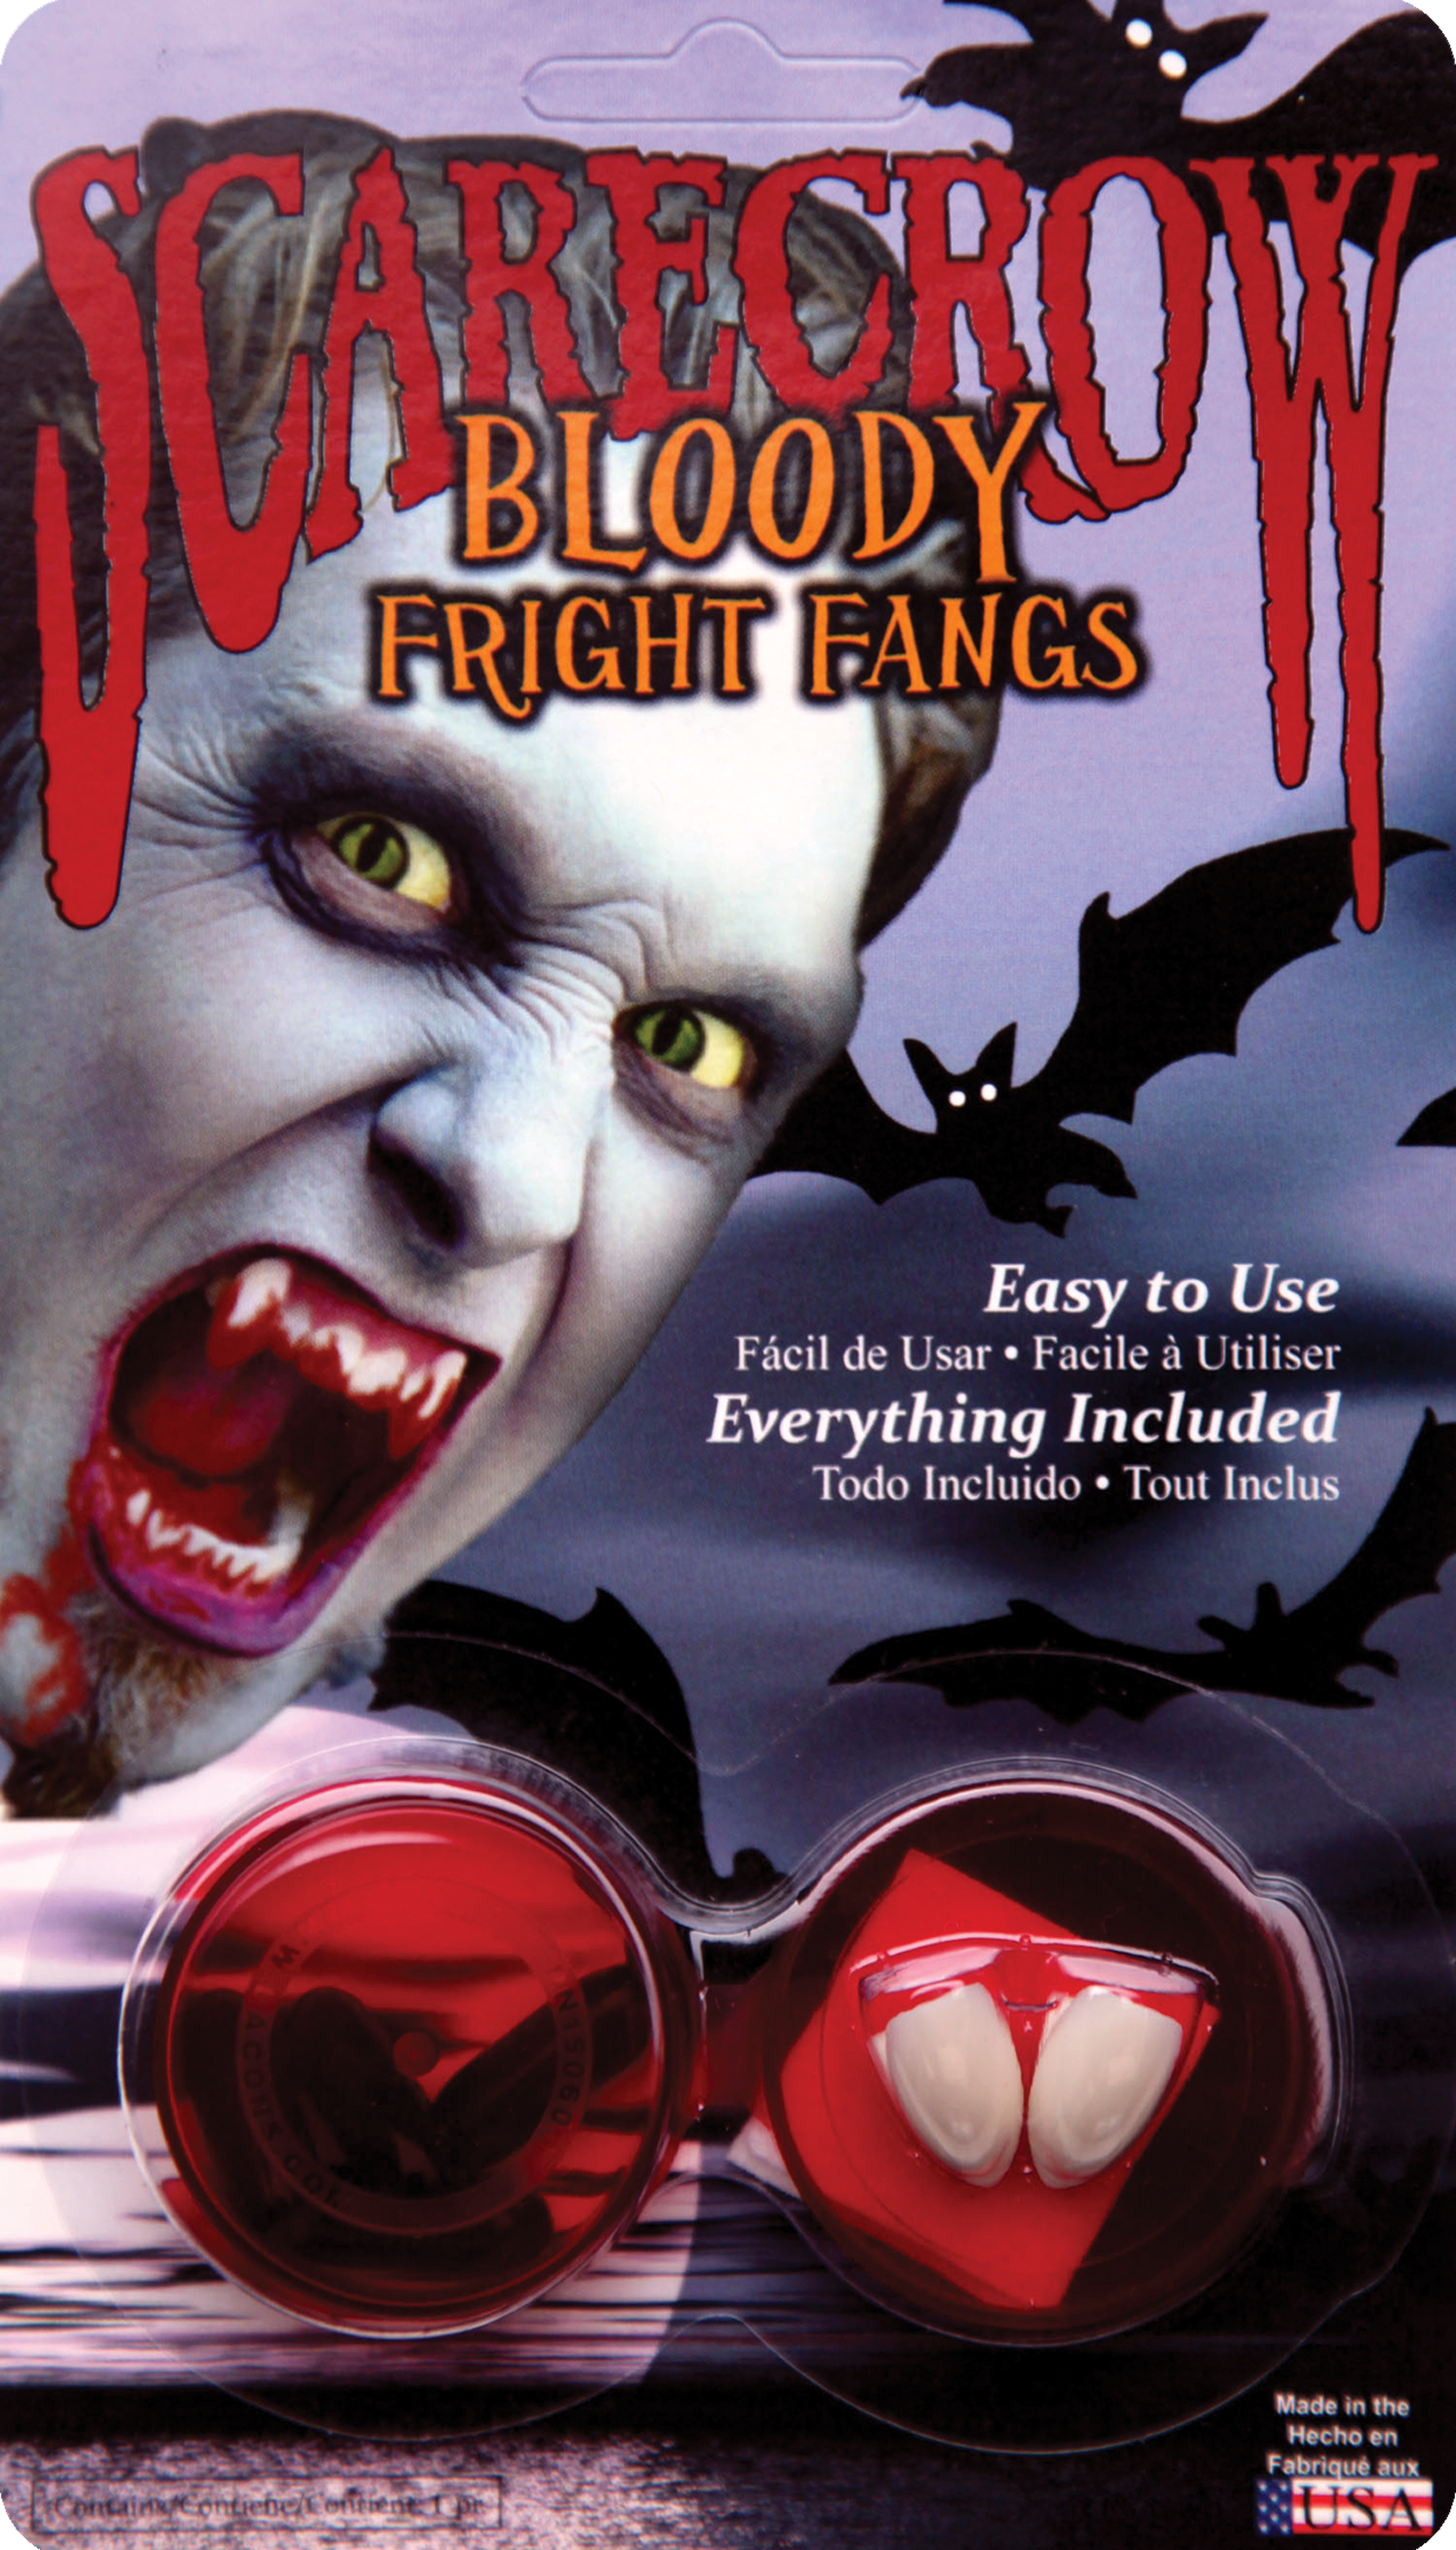 611398253031_BEC103_BloodyFrightFangs.png